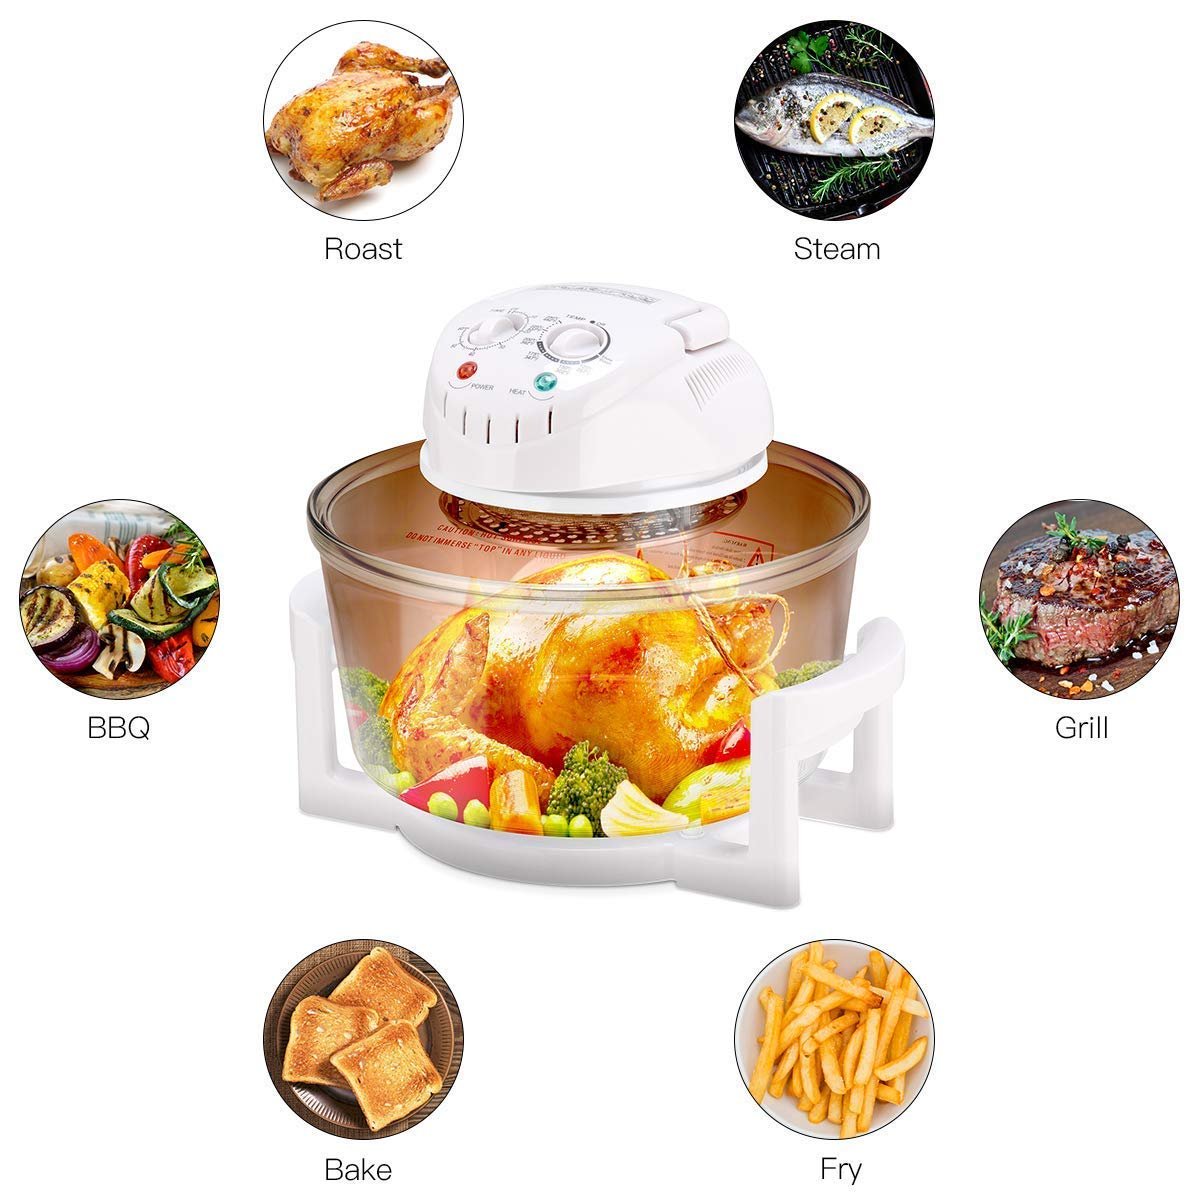 Upgraded Halogen Oven, 1400W 12L Air Fryer Cooker with Self-Cleaning Function, Adjustable Temperature and Timer, Includes Extender Ring to 17L Rack Tray, High Rack, Low Rack and Tong